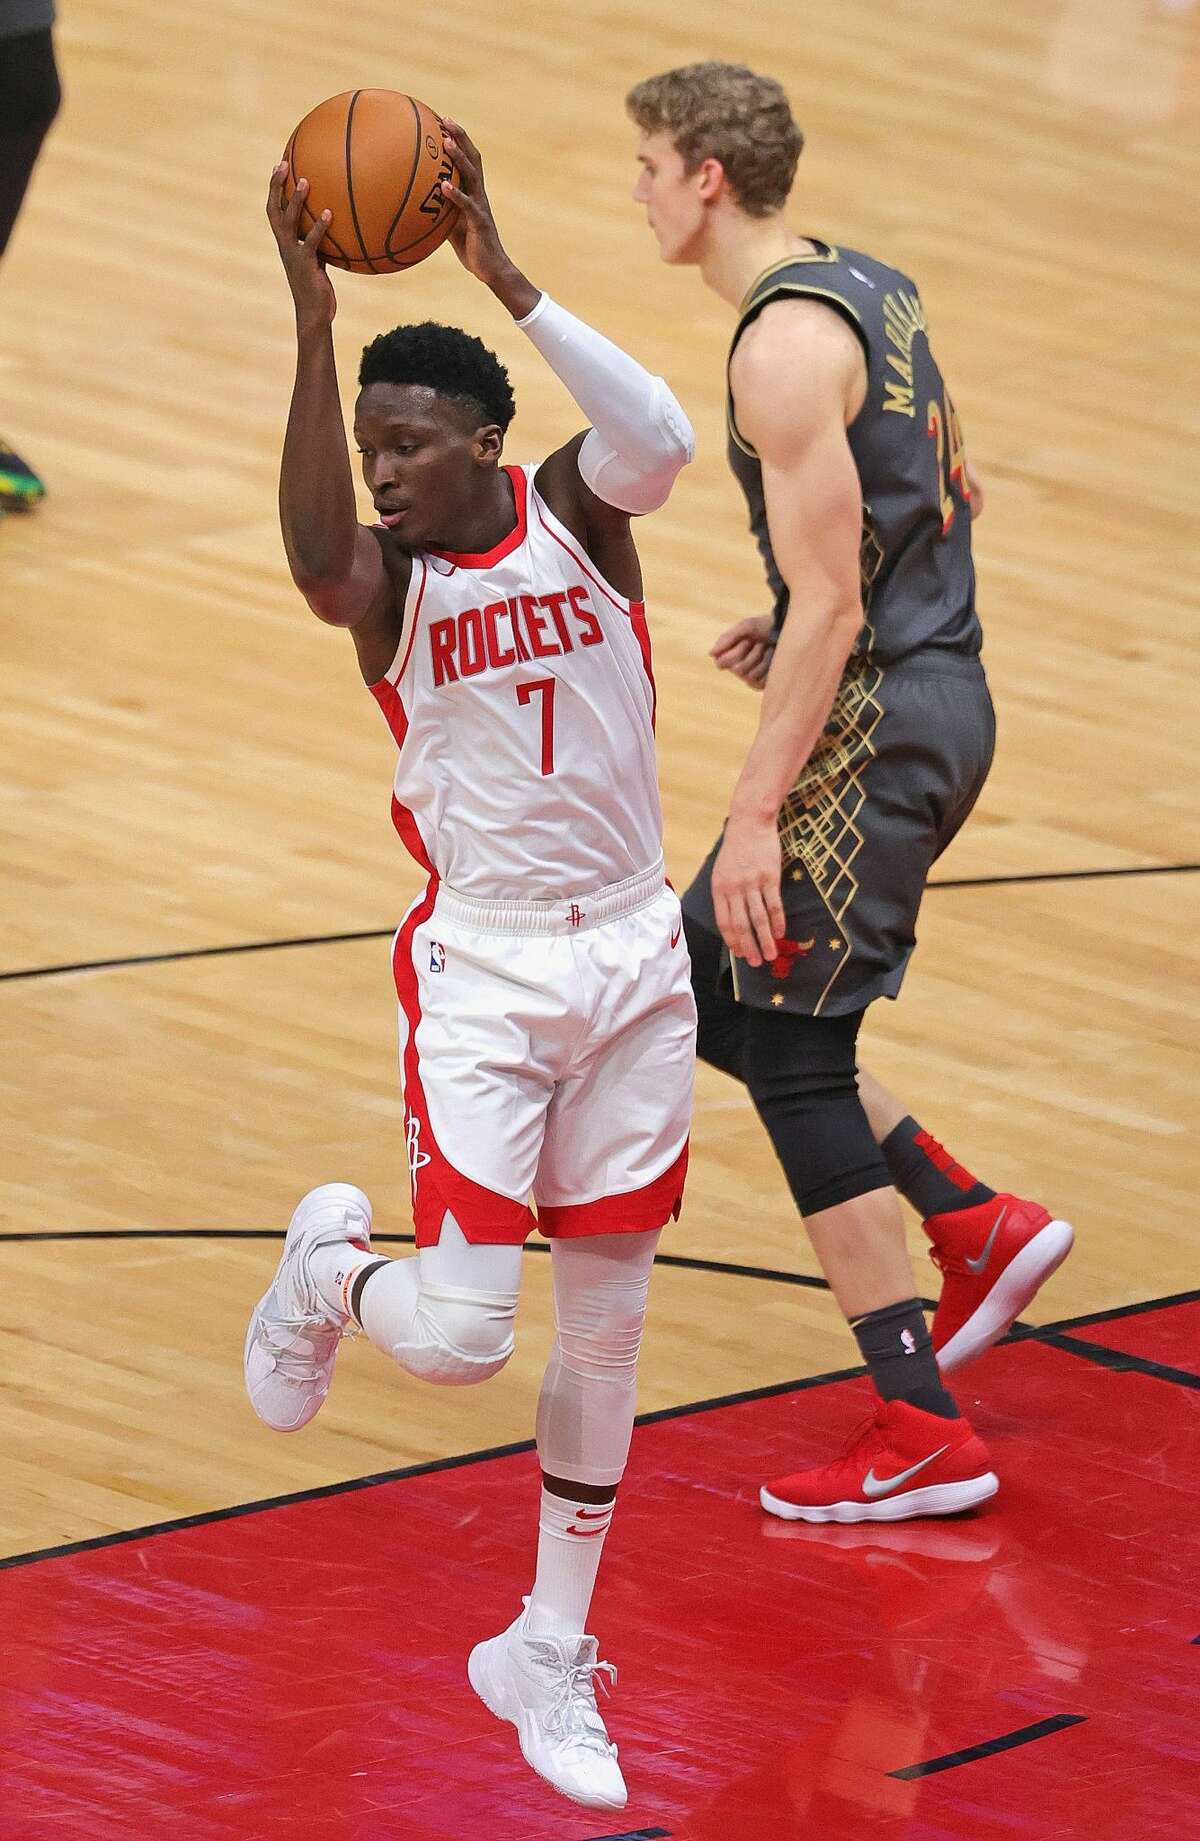 CHICAGO, ILLINOIS - JANUARY 18: Victor Oladipo #7 of the Houston Rockets rebounds against the Chicago Bulls at the United Center on January 18, 2021 in Chicago, Illinois. NOTE TO USER: User expressly acknowledges and agrees that, by downloading and or using this photograph, User is consenting to the terms and conditions of the Getty Images License Agreement. (Photo by Jonathan Daniel/Getty Images)